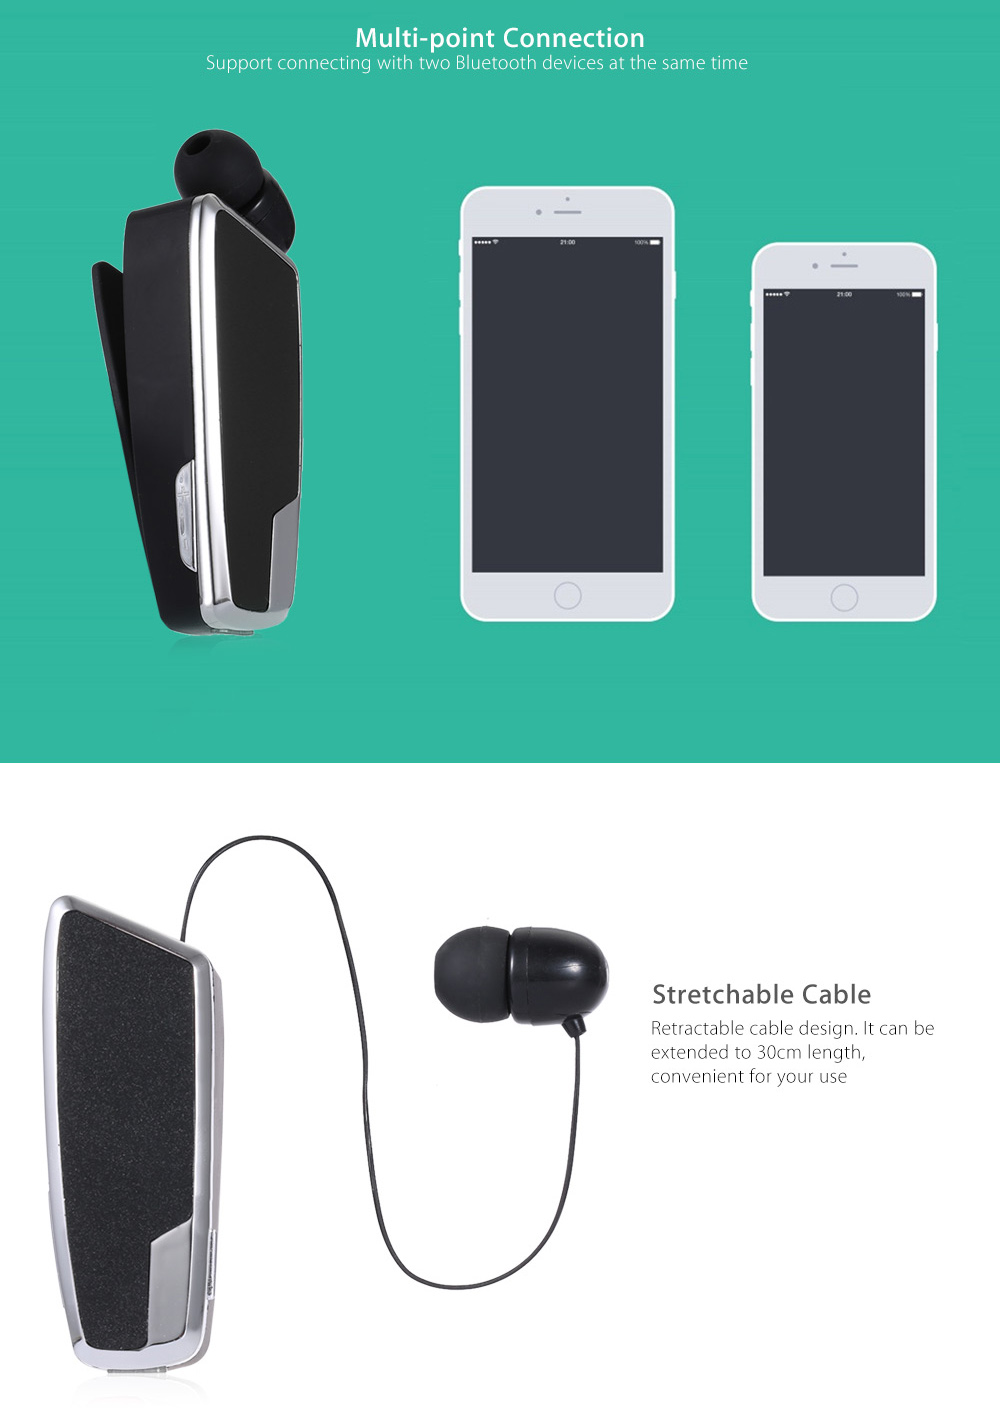 QP - 16 Clip Stretchable Wireless Bluetooth Business Headset Support Hands-free Calls Volume Control